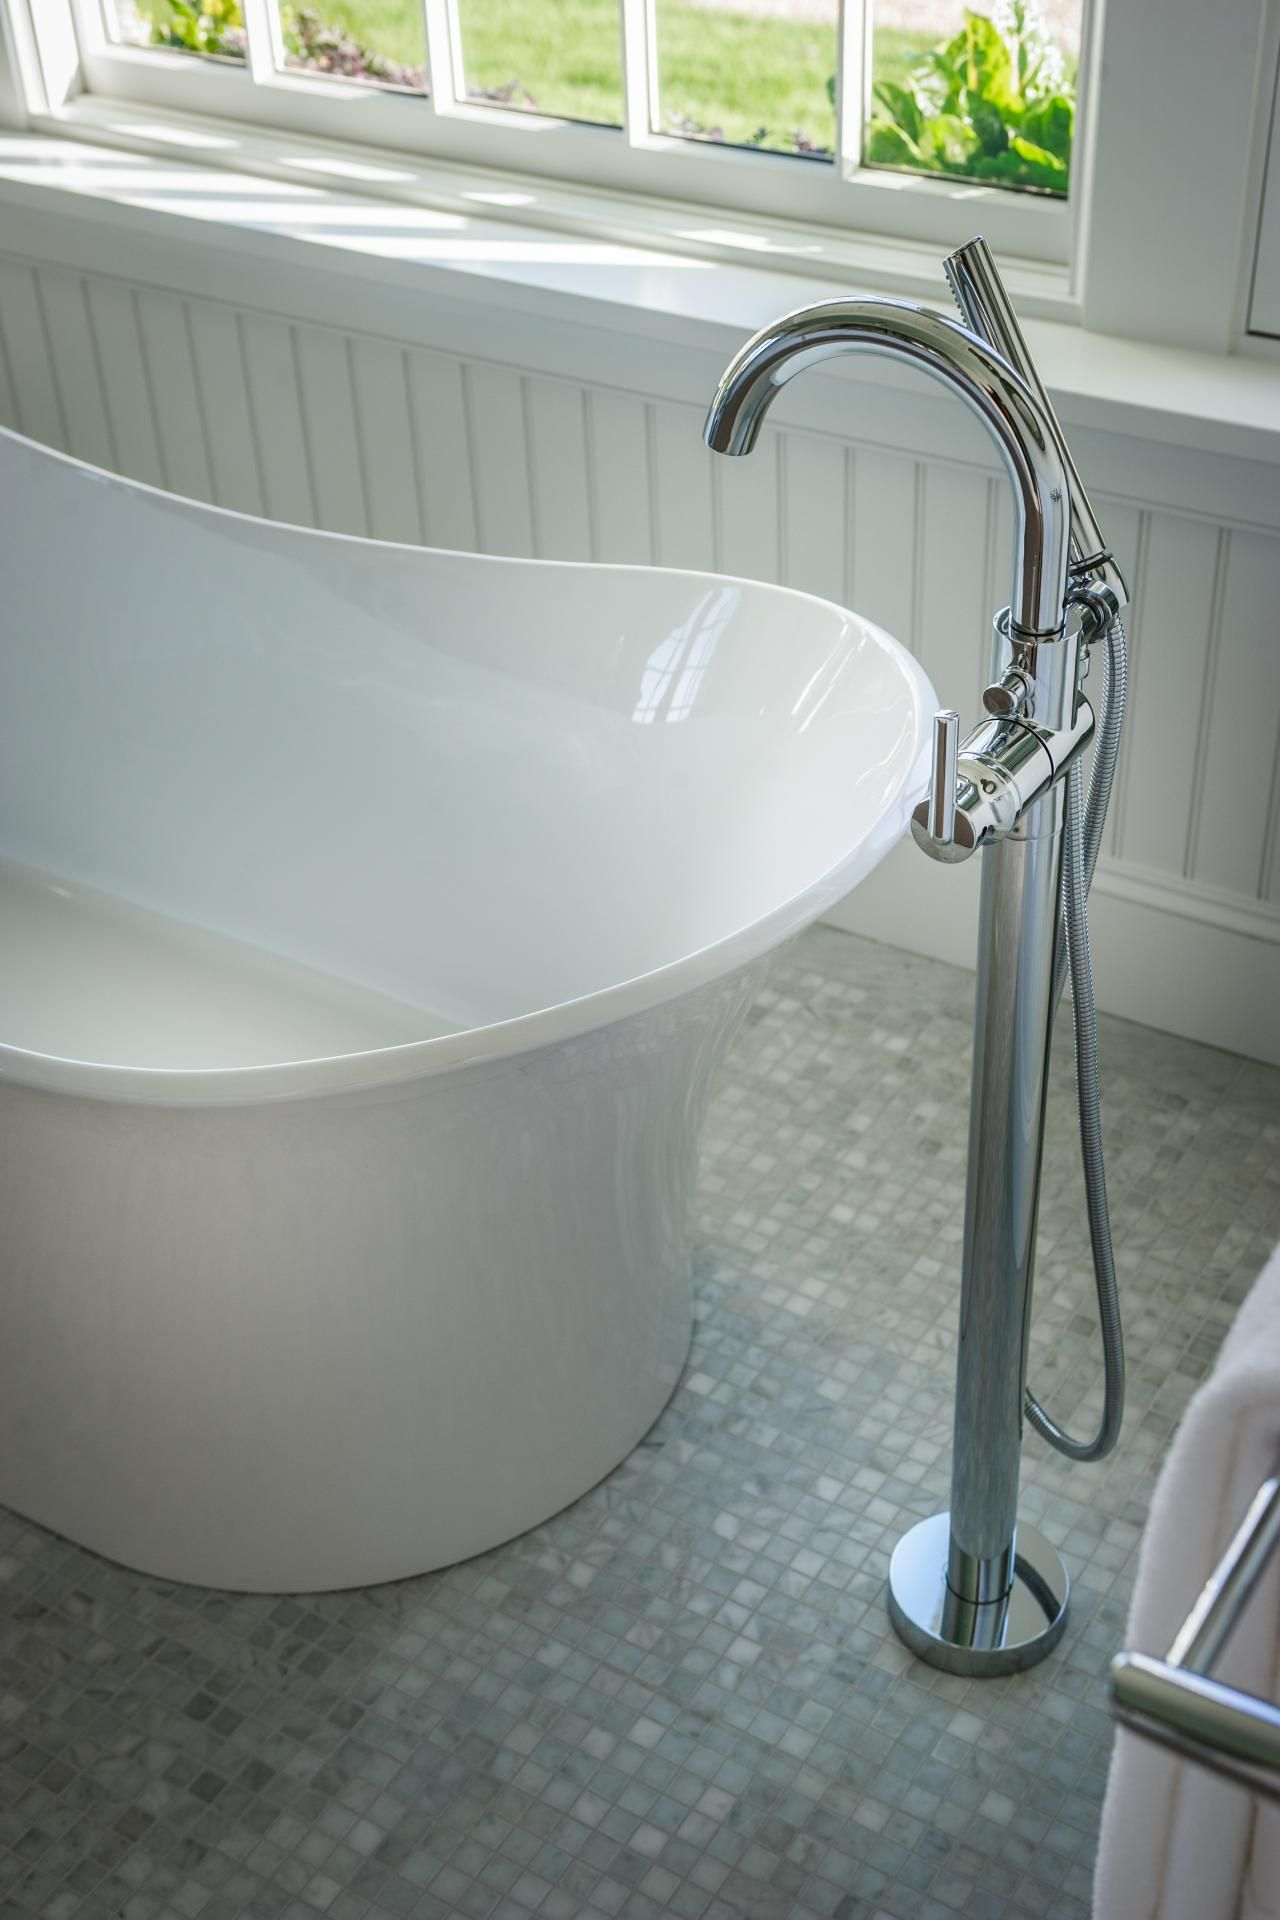 A Floor Mount Tub Filler I Love This Idea This Would Be Perfect